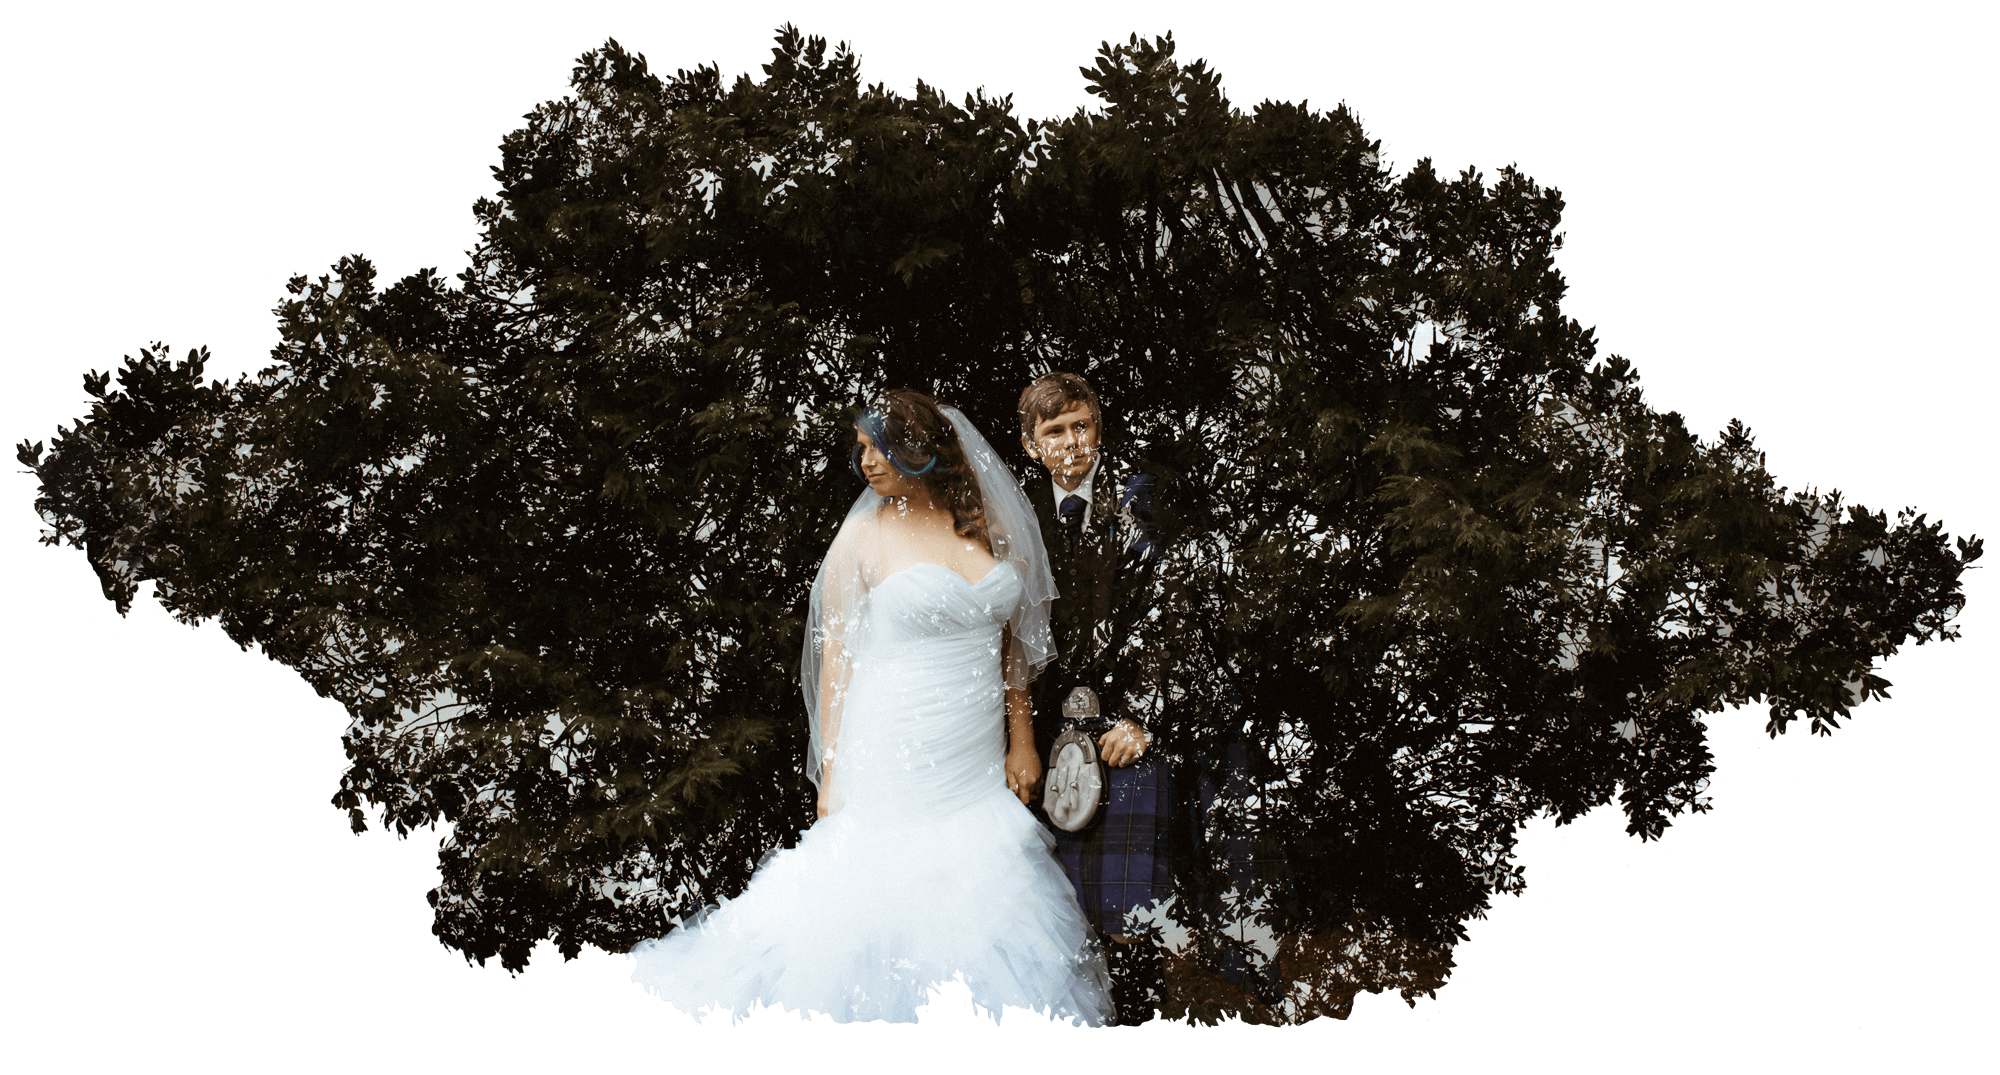 glasgow-wedding-photographer-mark-timm-double-exposure-tree-couple.png